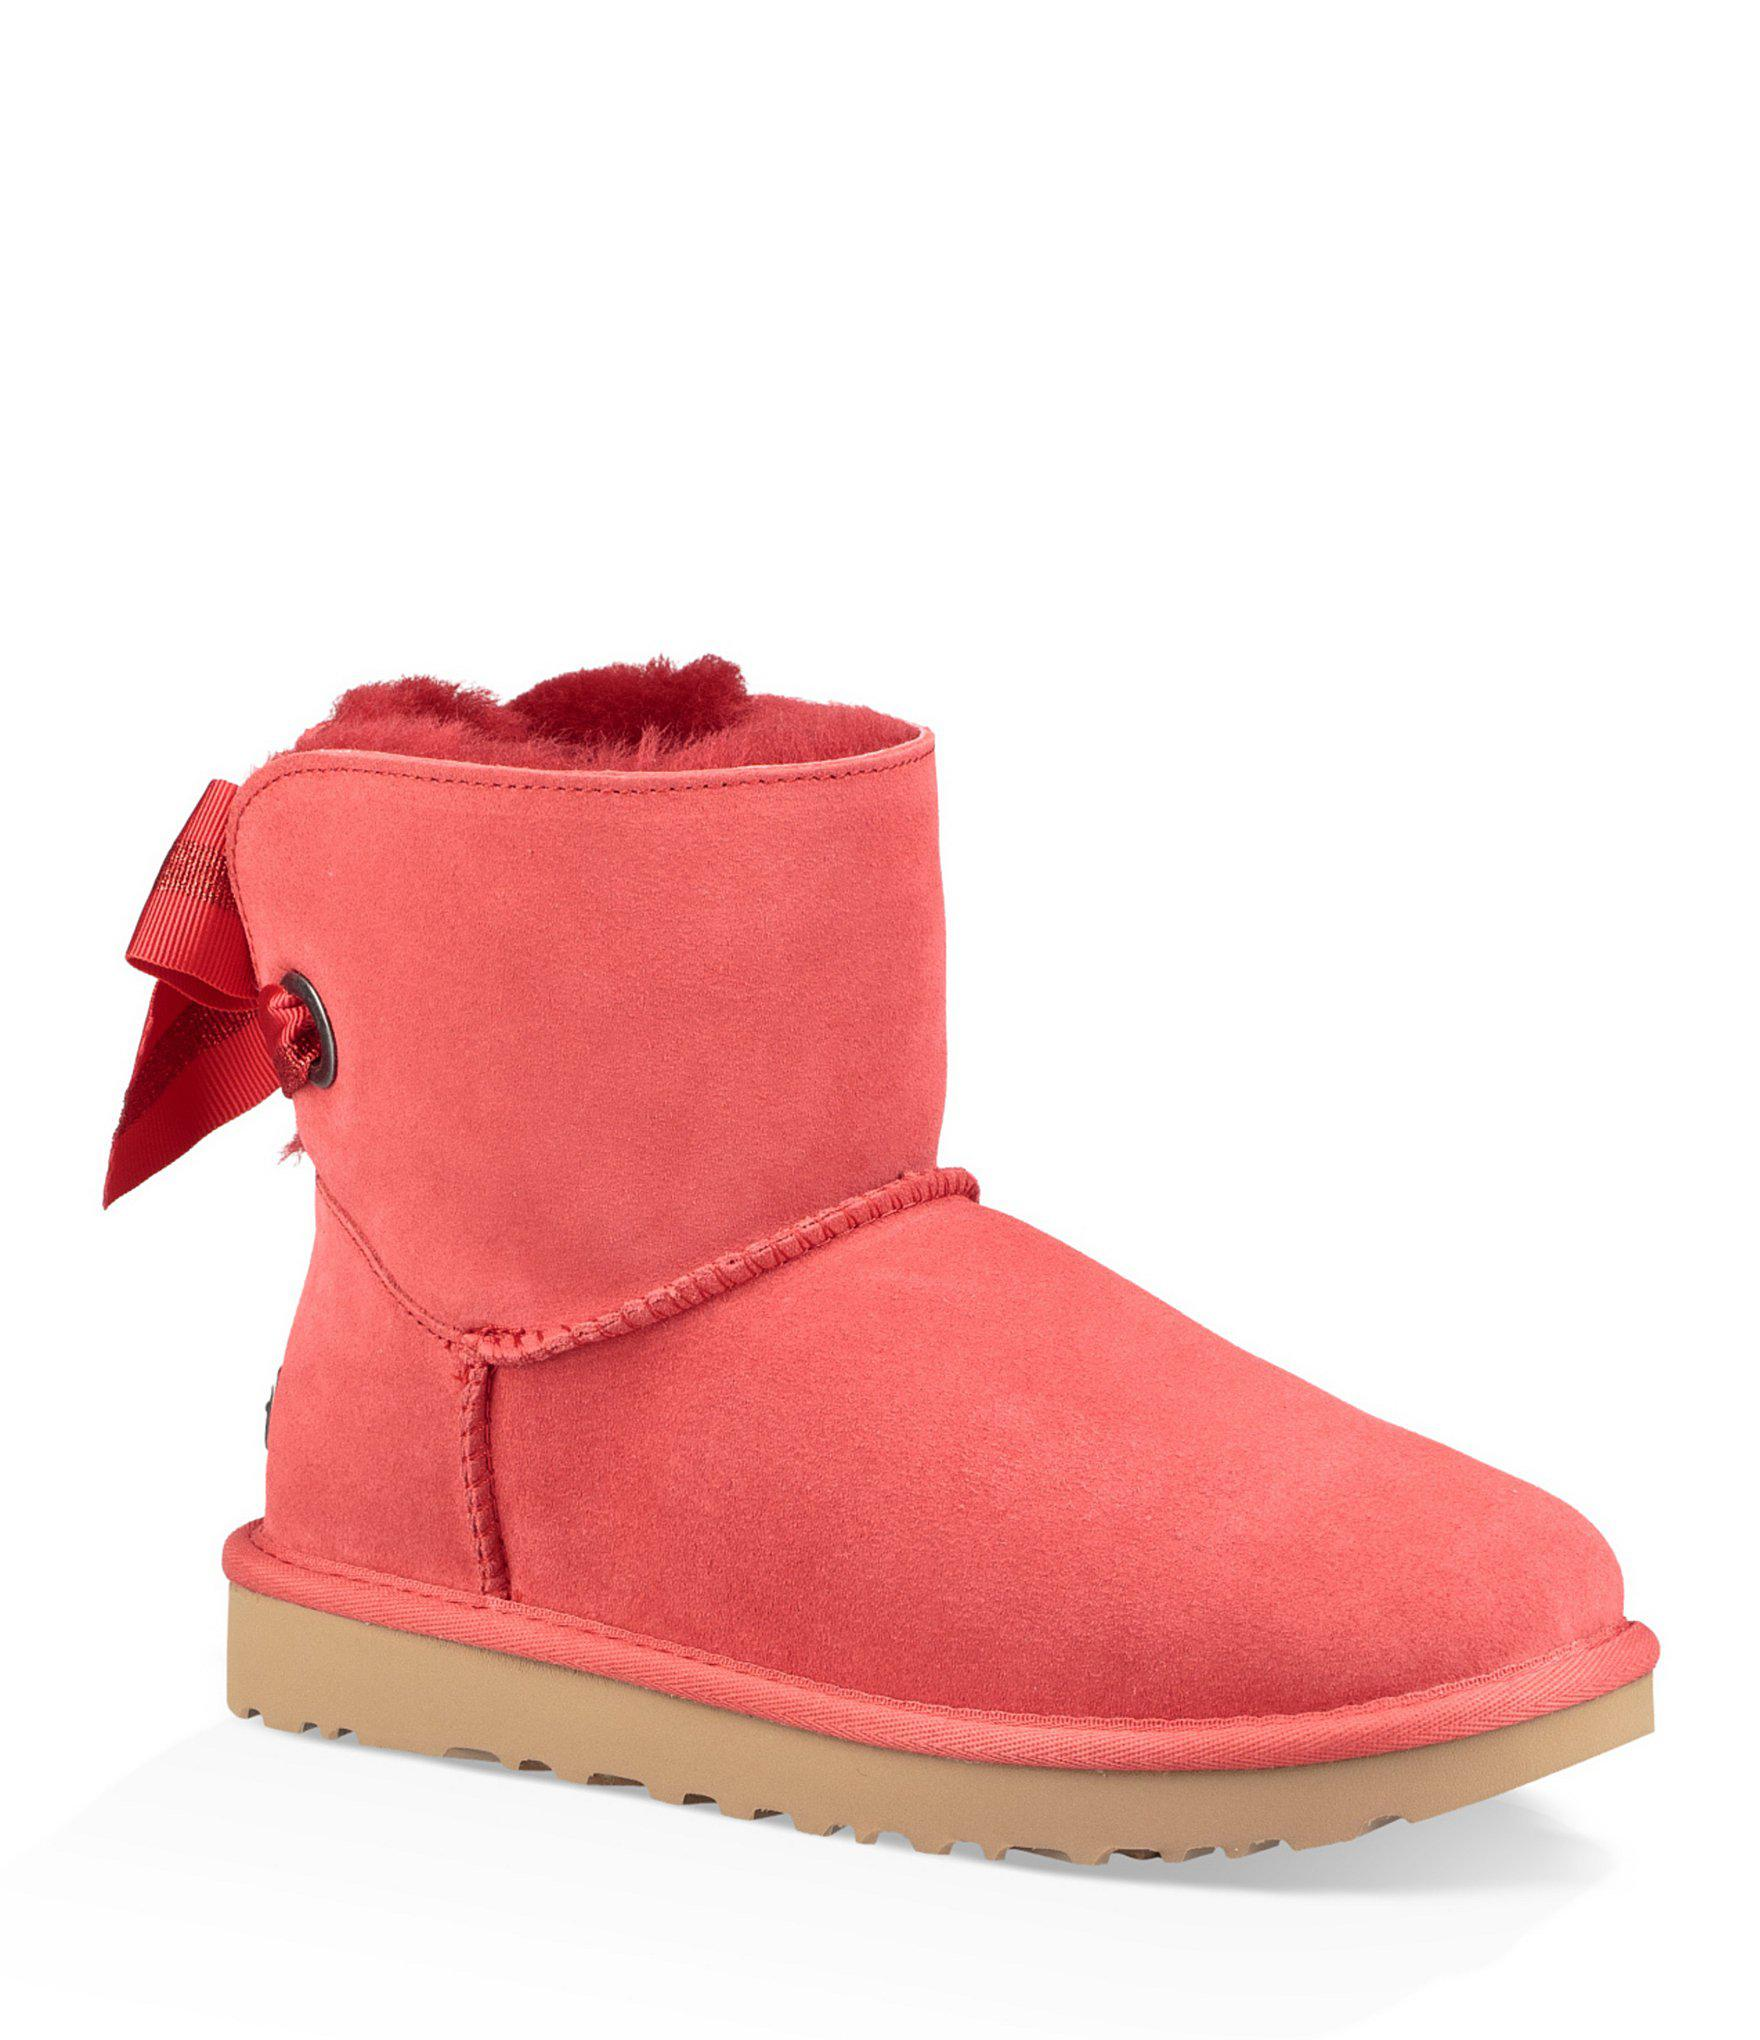 41335879fa3 Lyst - UGG Custom Bailey Bow Mini Booties in Red